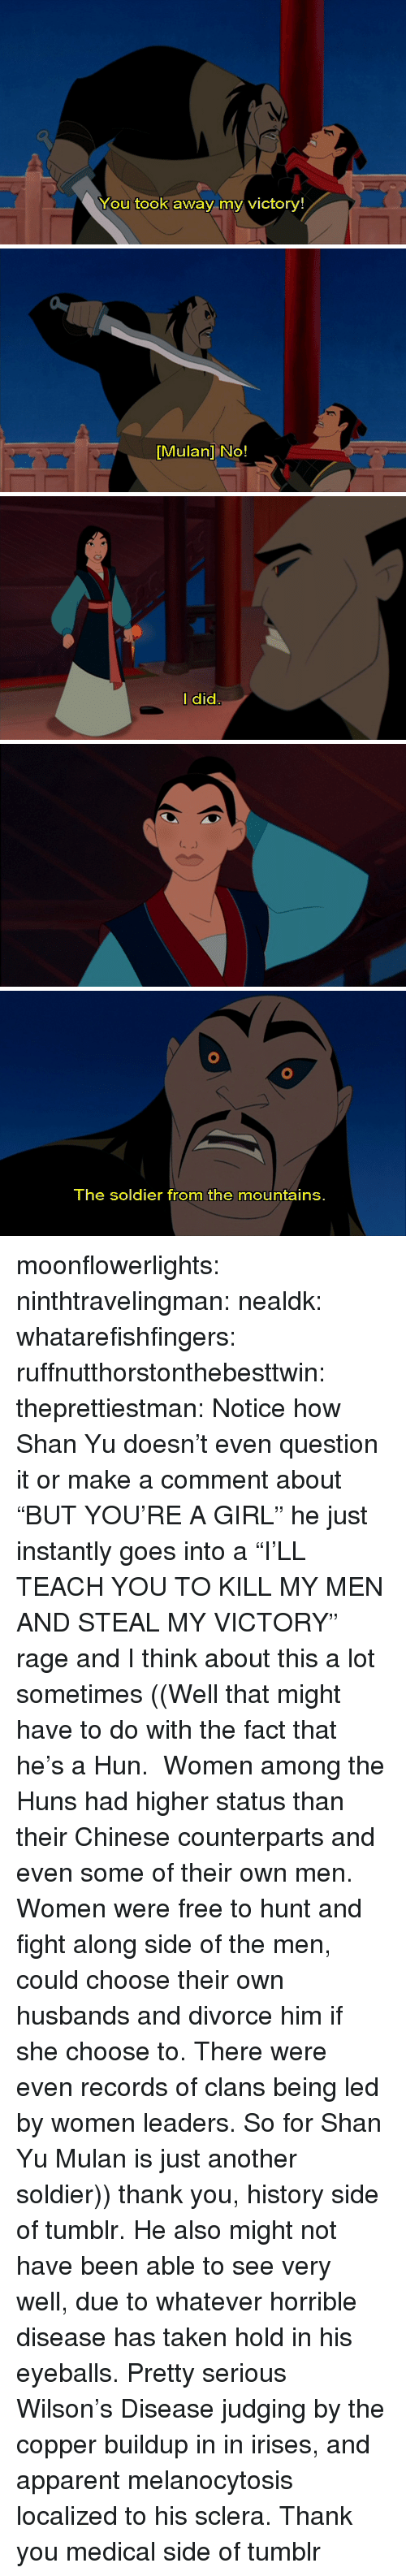 "Mulan, Taken, and Target: You took away my victory!   [Mulan] No!   l did   The soldier from the mountains. moonflowerlights:  ninthtravelingman:  nealdk:  whatarefishfingers:  ruffnutthorstonthebesttwin:  theprettiestman:  Notice how Shan Yu doesn't even question it or make a comment about ""BUT YOU'RE A GIRL"" he just instantly goes into a ""I'LL TEACH YOU TO KILL MY MEN AND STEAL MY VICTORY"" rage and I think about this a lot sometimes  ((Well that might have to do with the fact that he's a Hun.  Women among the Huns had higher status than their Chinese counterparts and even some of their own men. Women were free to hunt and fight along side of the men, could choose their own husbands and divorce him if she choose to. There were even records of clans being led by women leaders. So for Shan Yu Mulan is just another soldier))  thank you, history side of tumblr.  He also might not have been able to see very well, due to whatever horrible disease has taken hold in his eyeballs.  Pretty serious Wilson's Disease judging by the copper buildup in in irises, and apparent melanocytosis localized to his sclera.  Thank you medical side of tumblr"